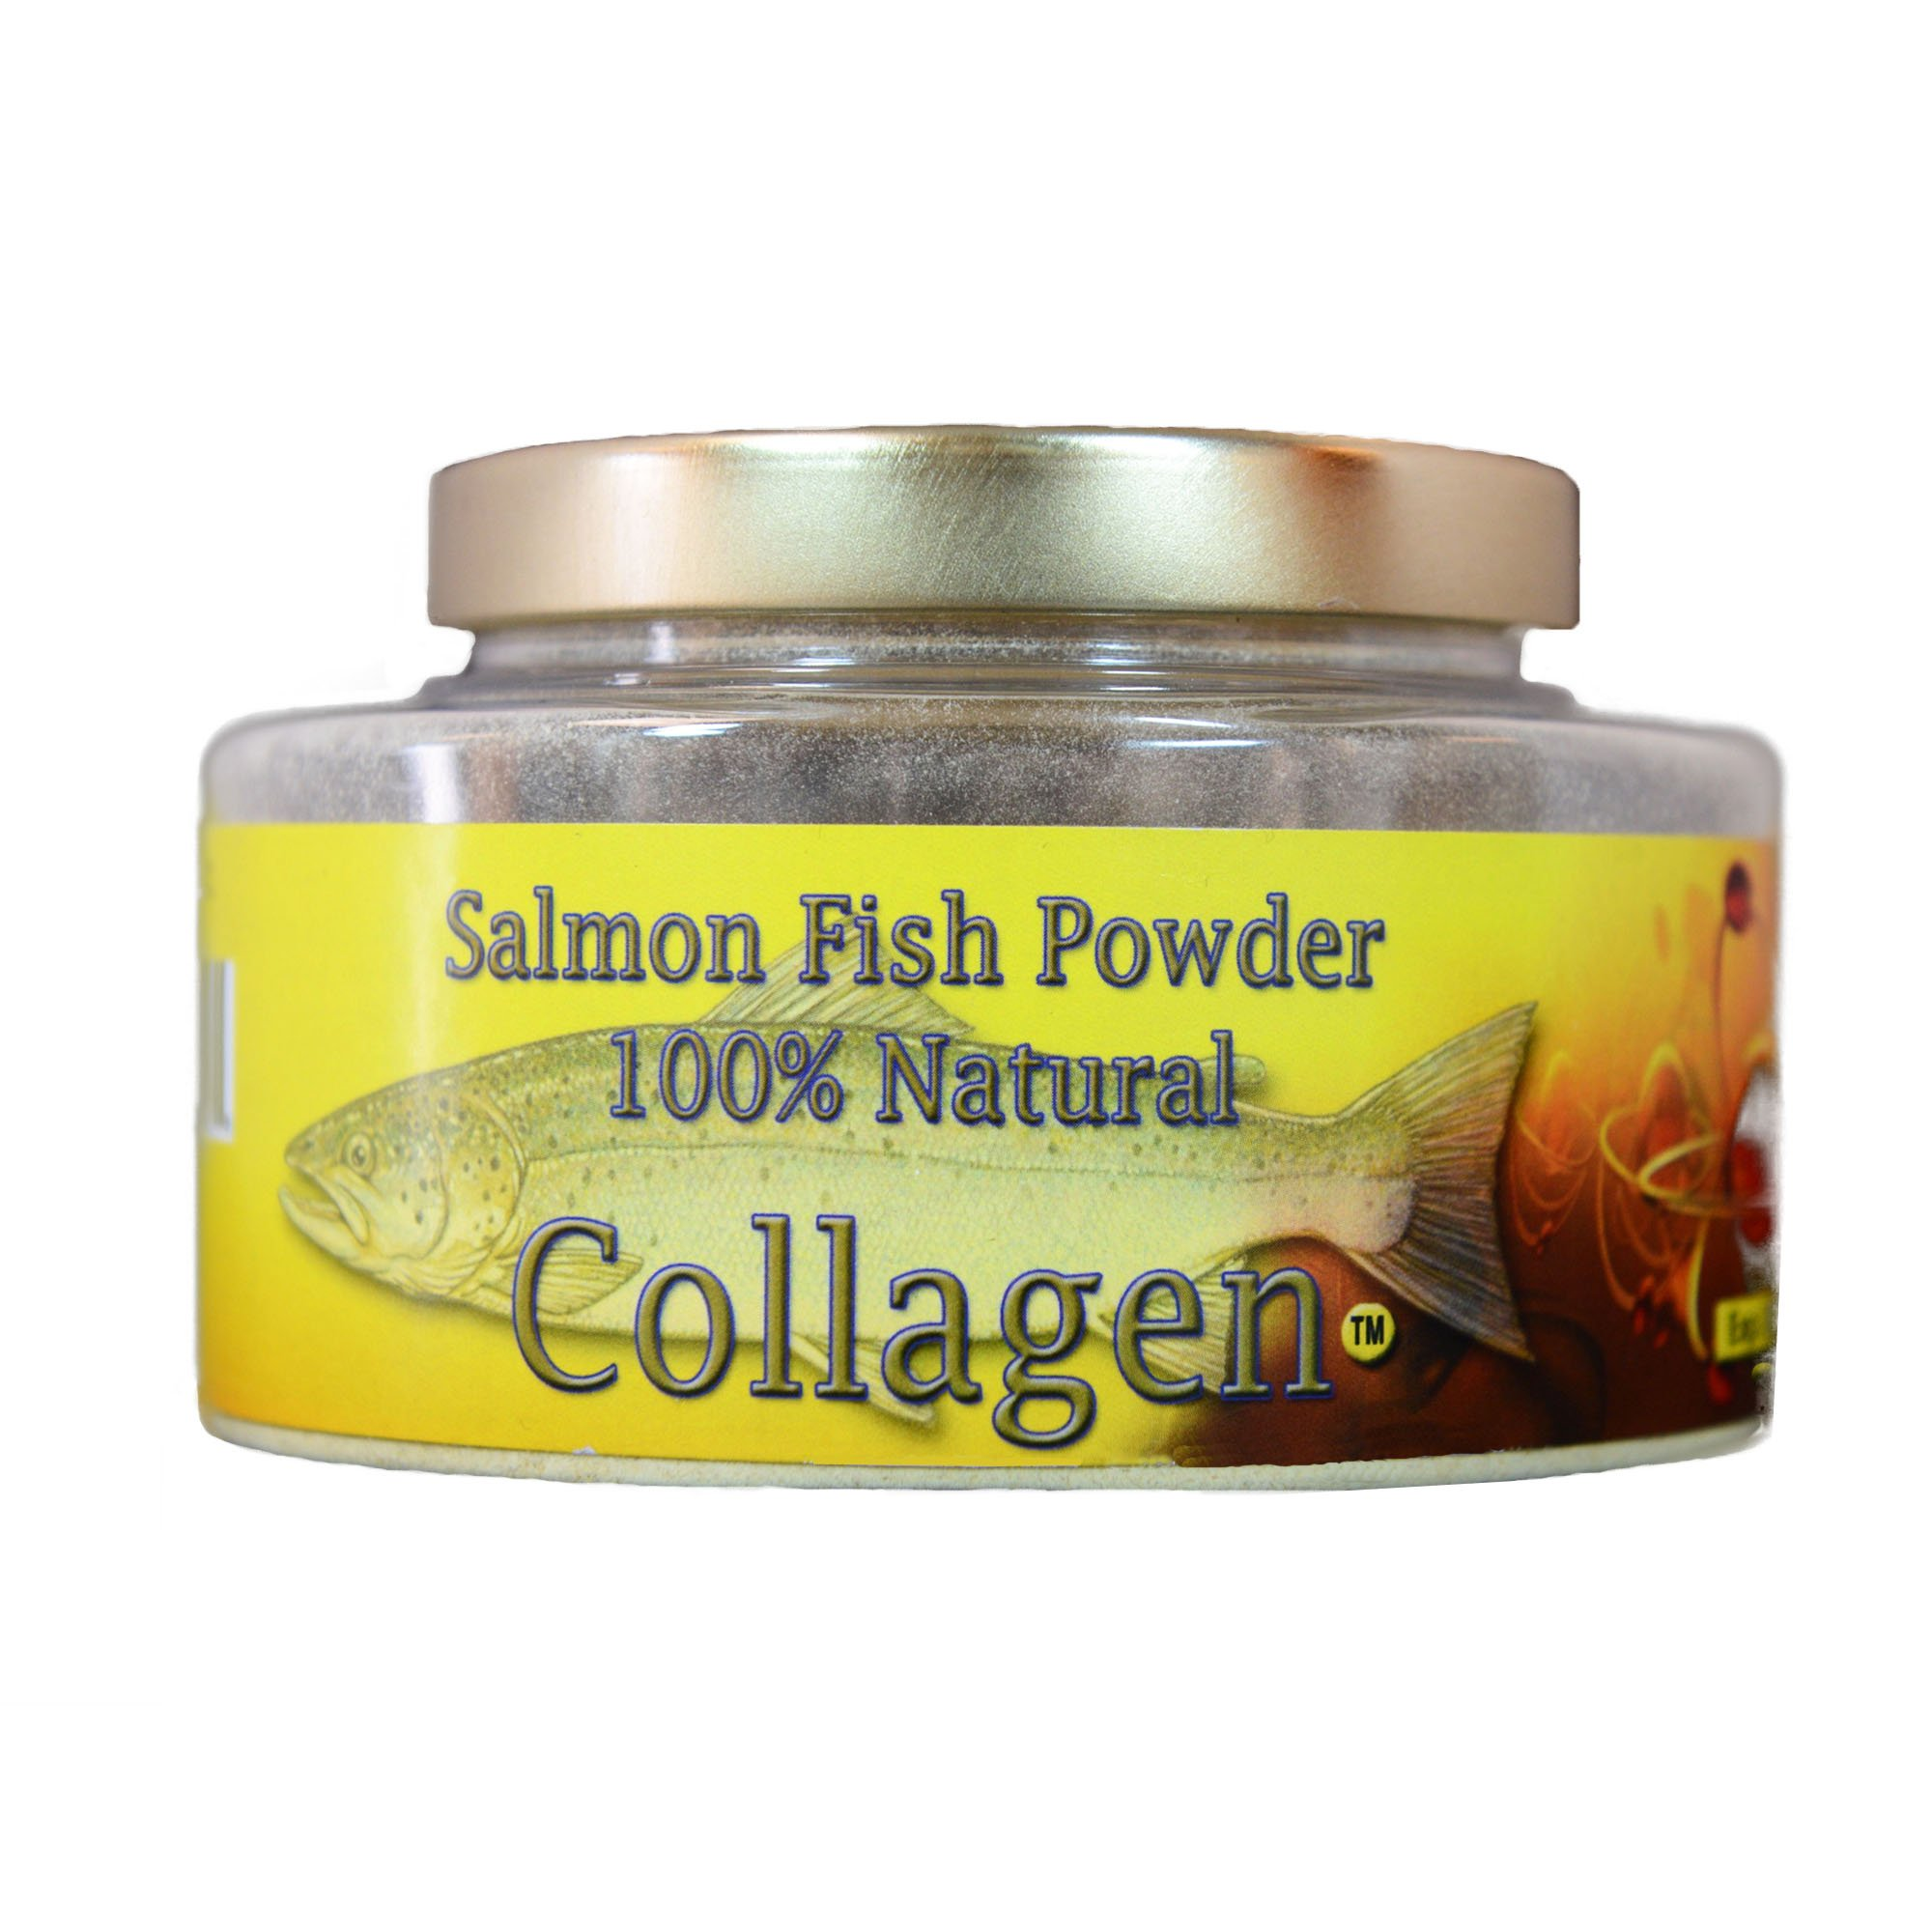 SALCOLL COLLAGEN Salmon Collagen Powder - Organic Collagen For Aids Tissue Cartilage & Bone Regeneration For Extra Energy Mobility & Vitality - 3 month supply